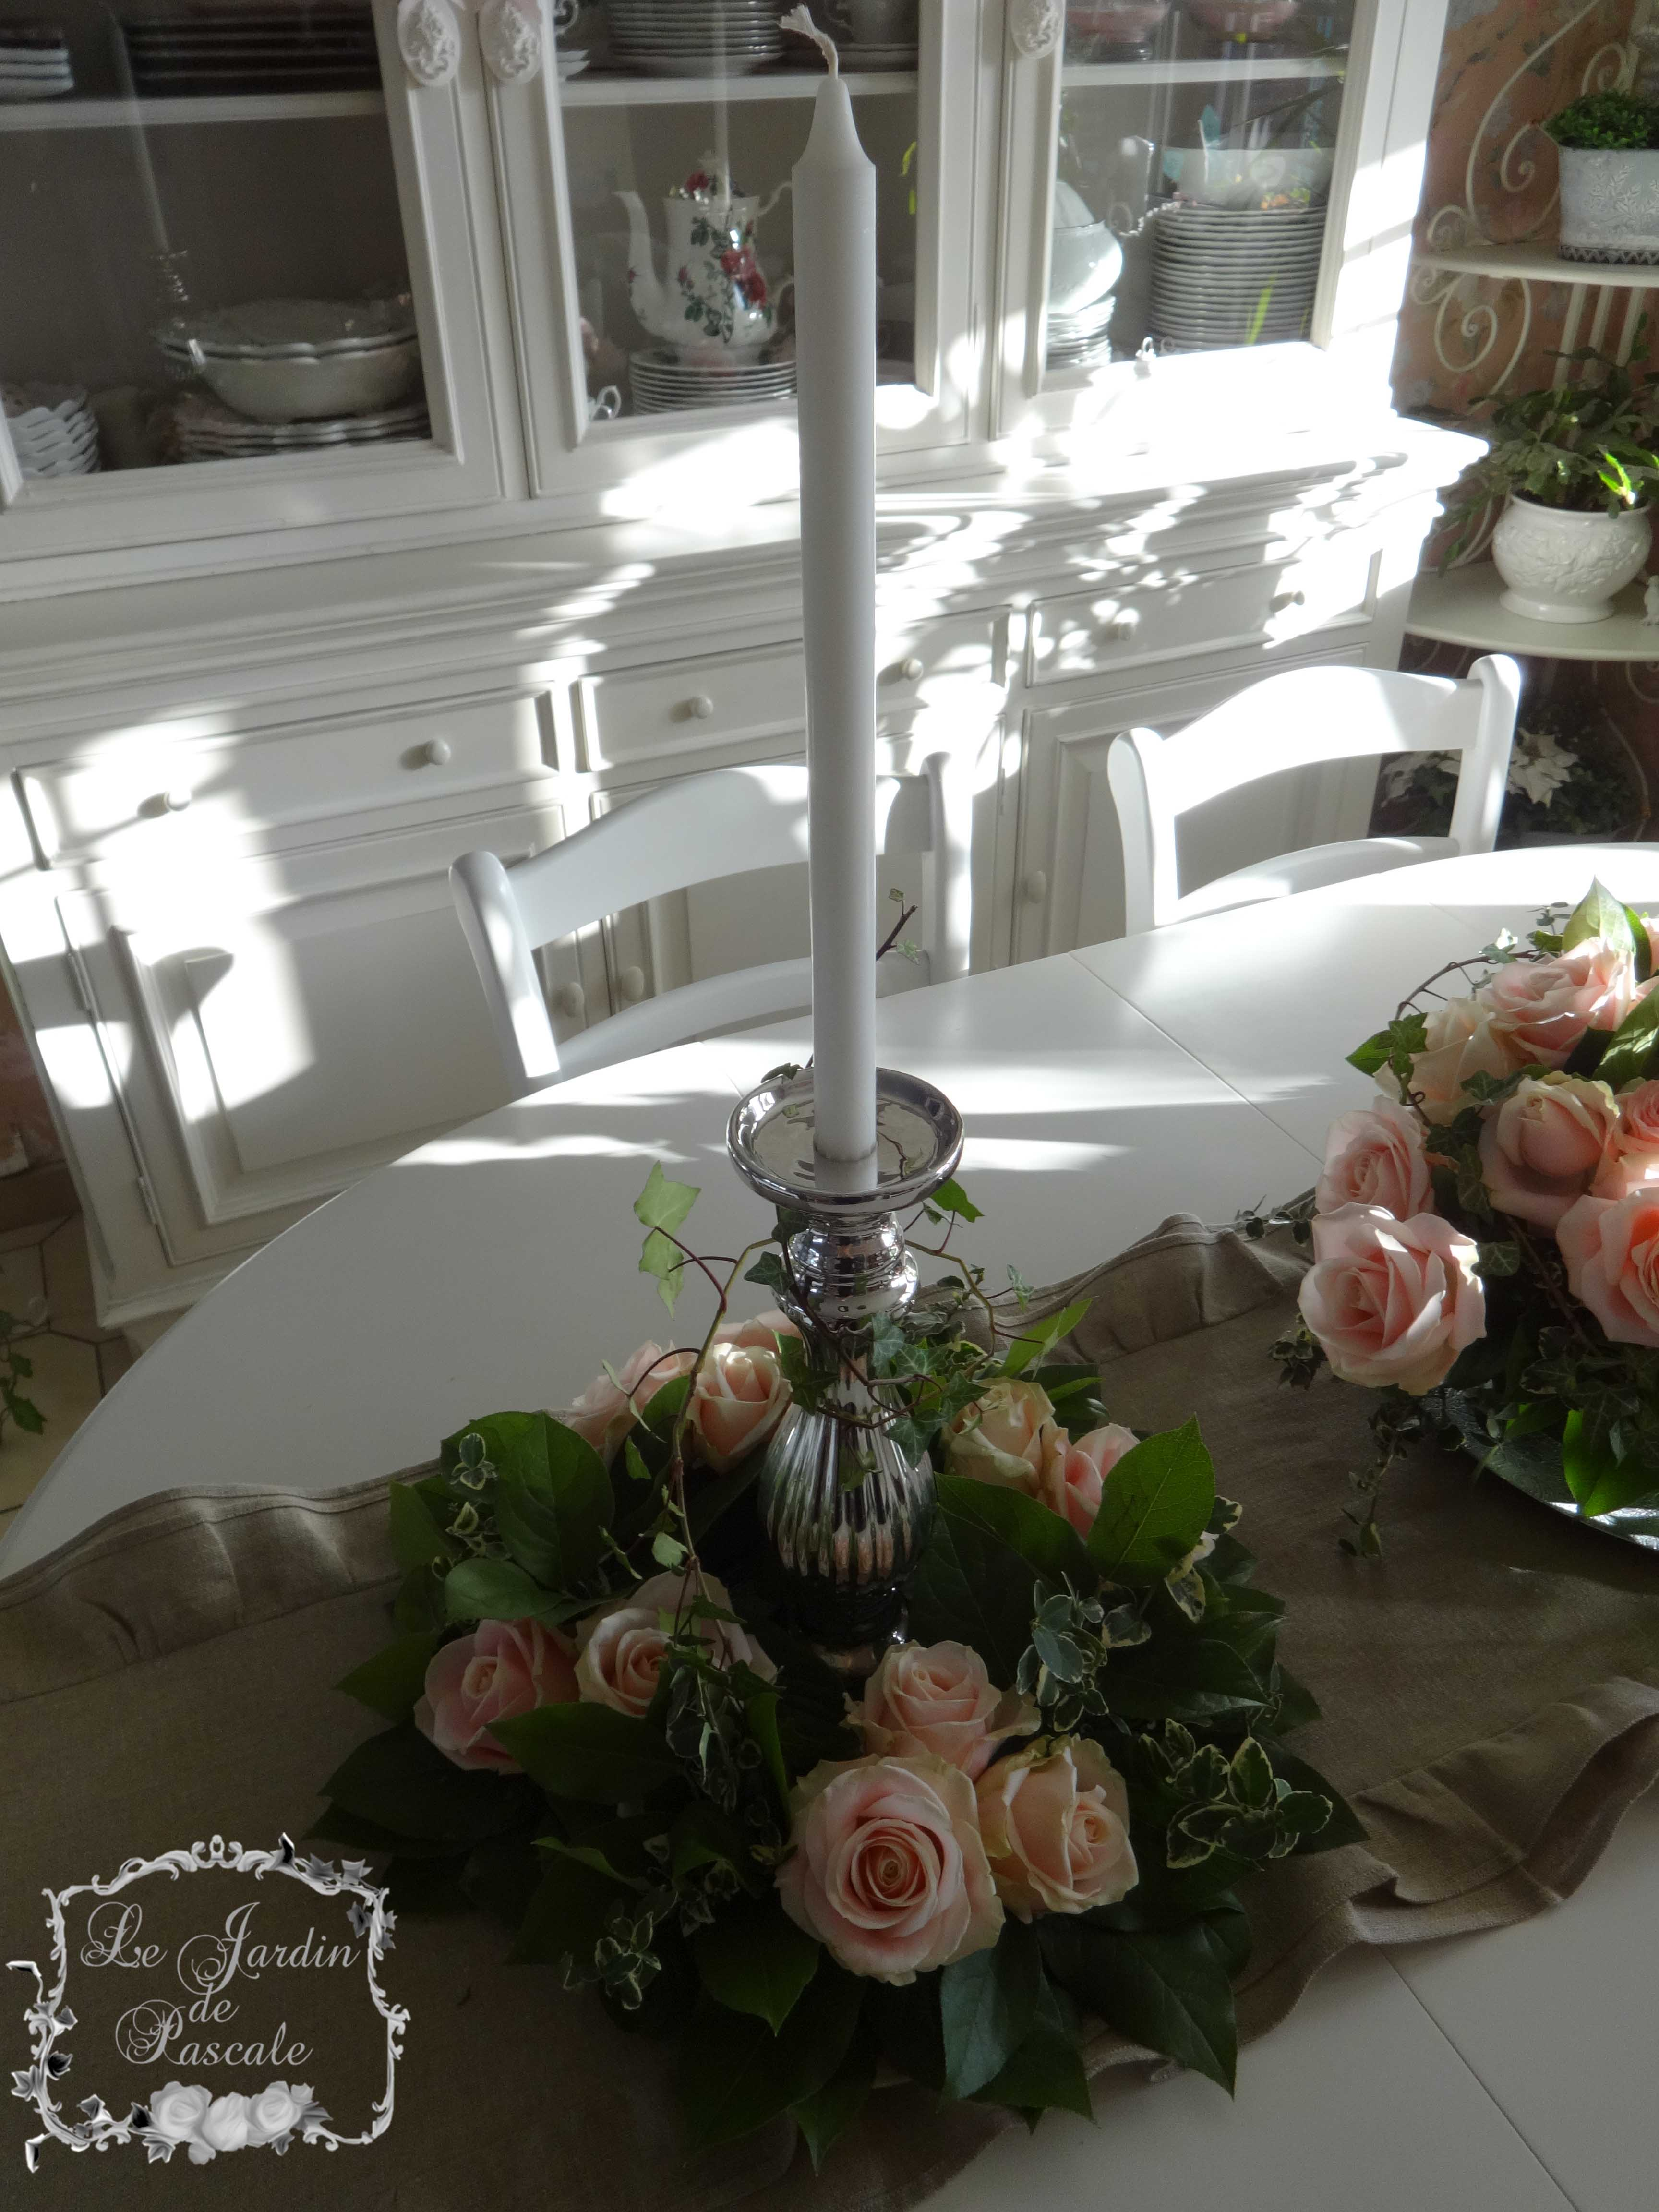 Art floral archives le jardin de pascale - Centre de table bougie ...